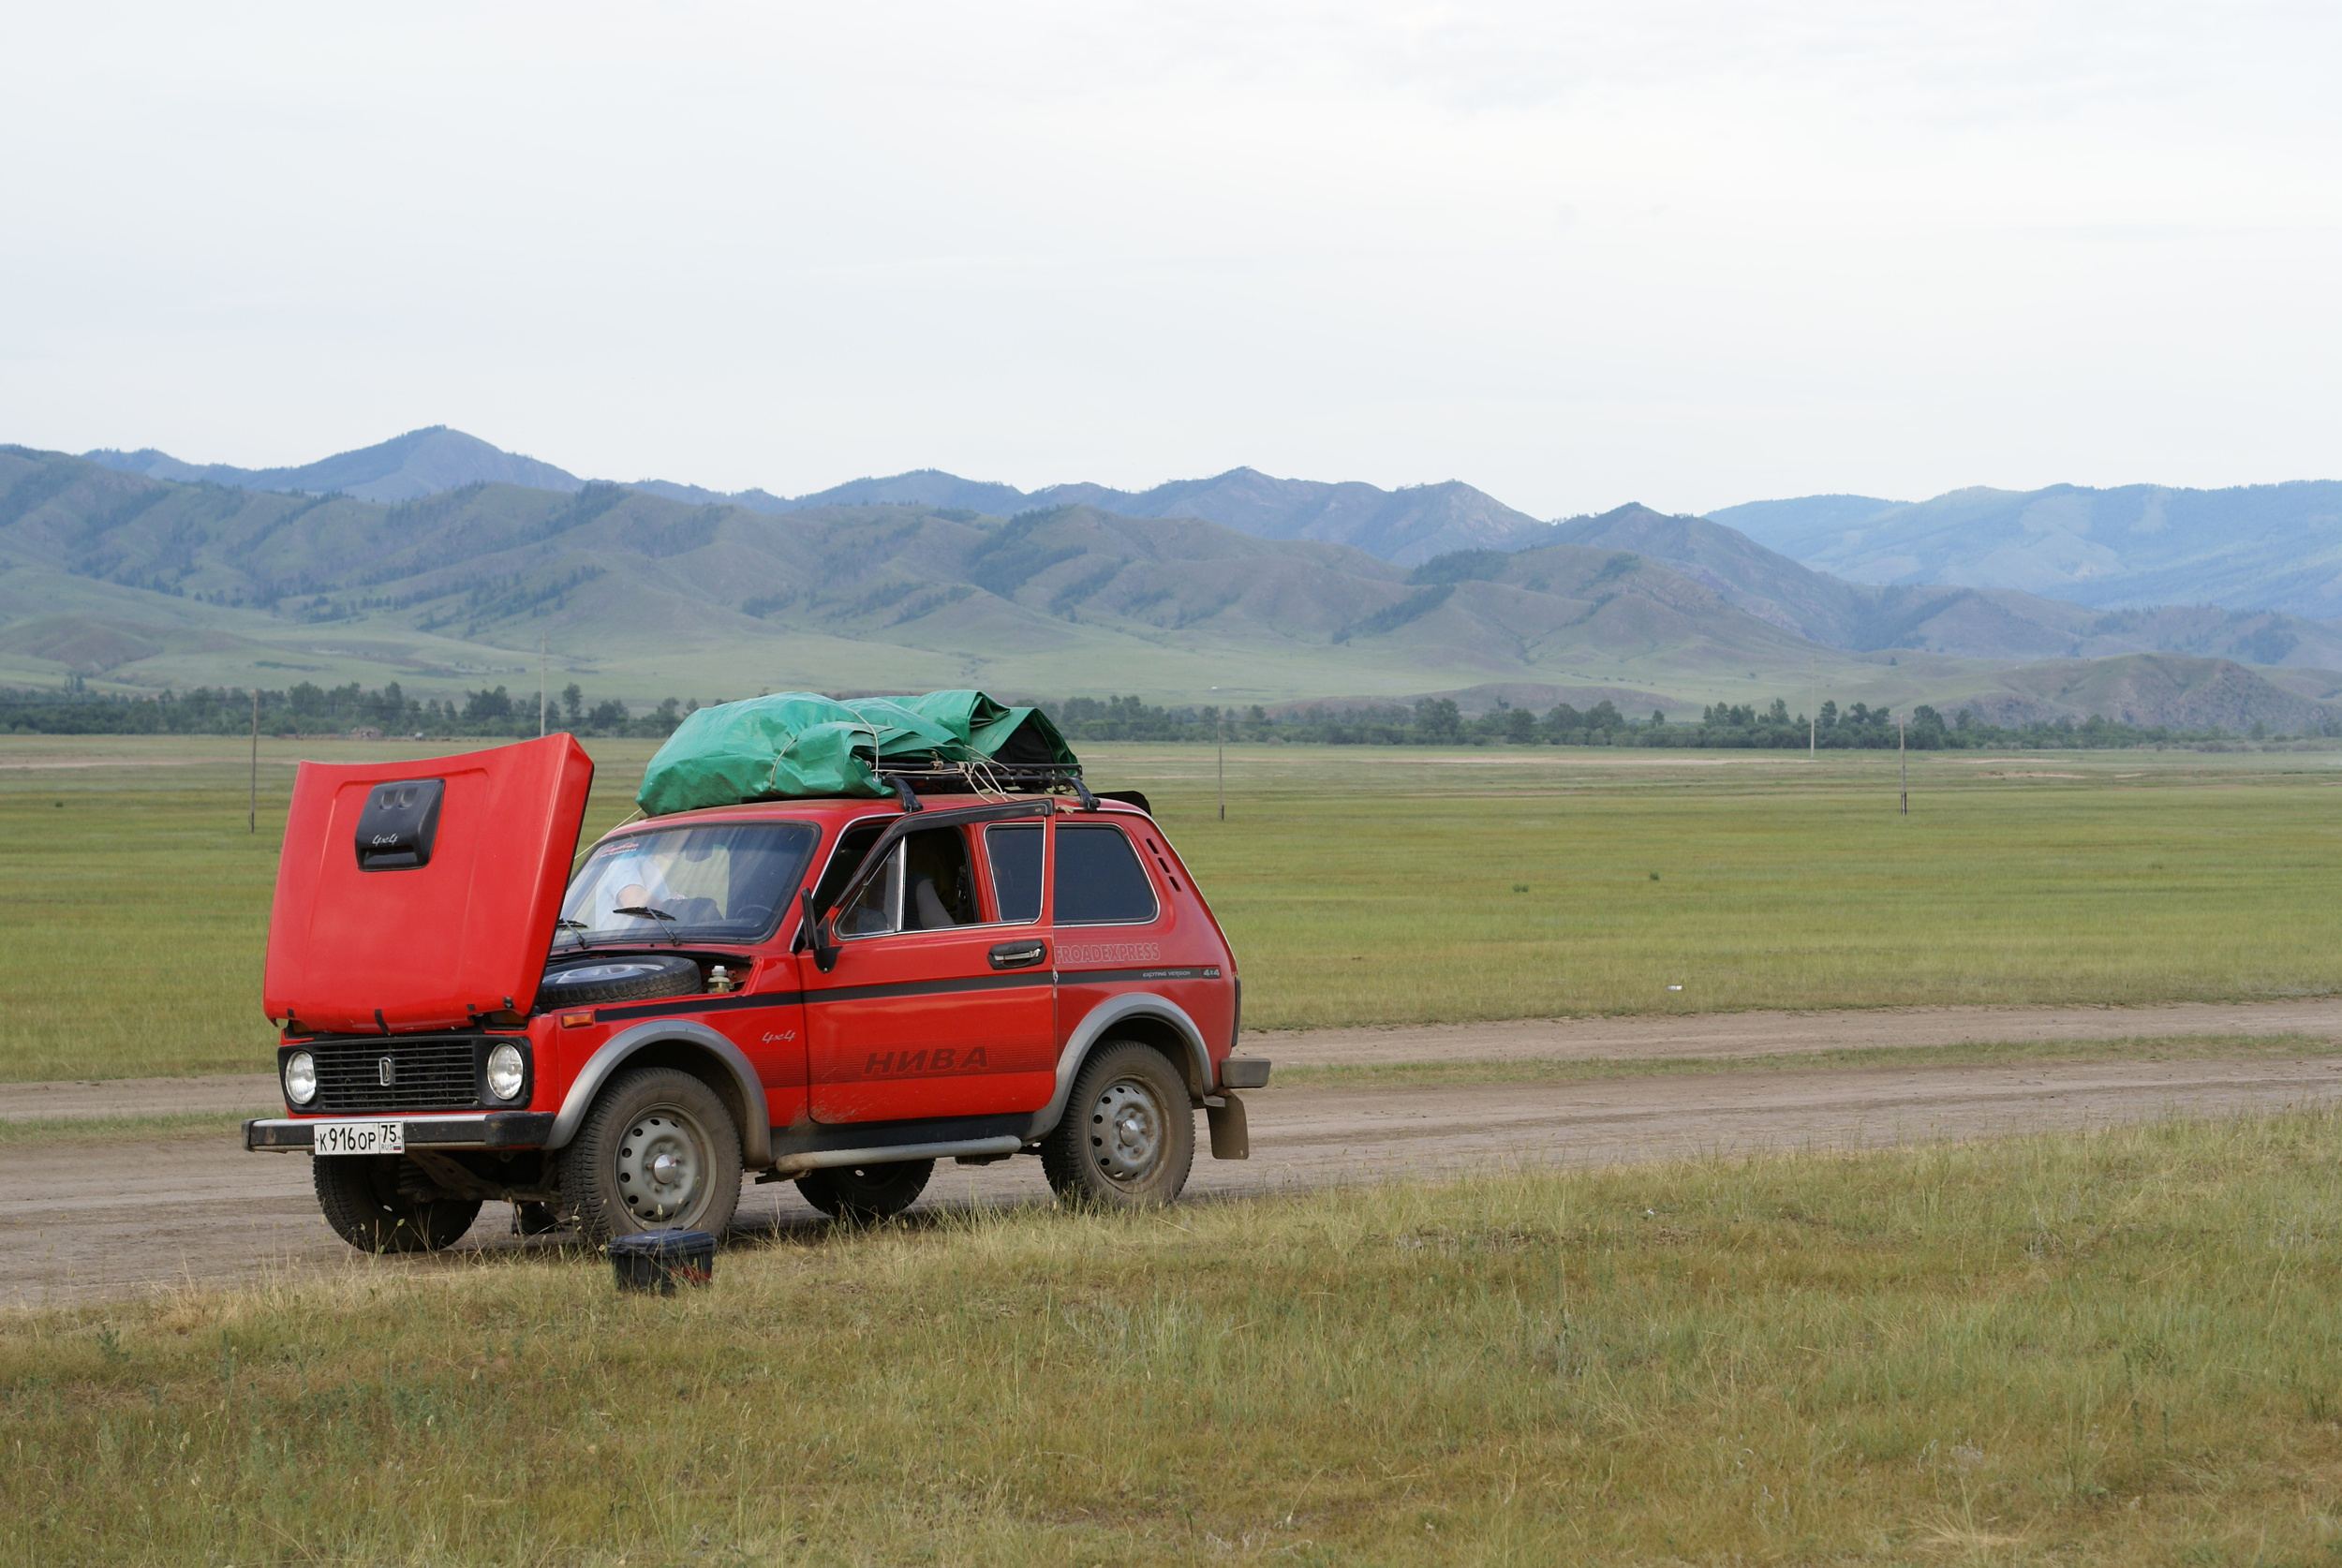 Our second car, a 1996 Lada Niva in Mongolia.